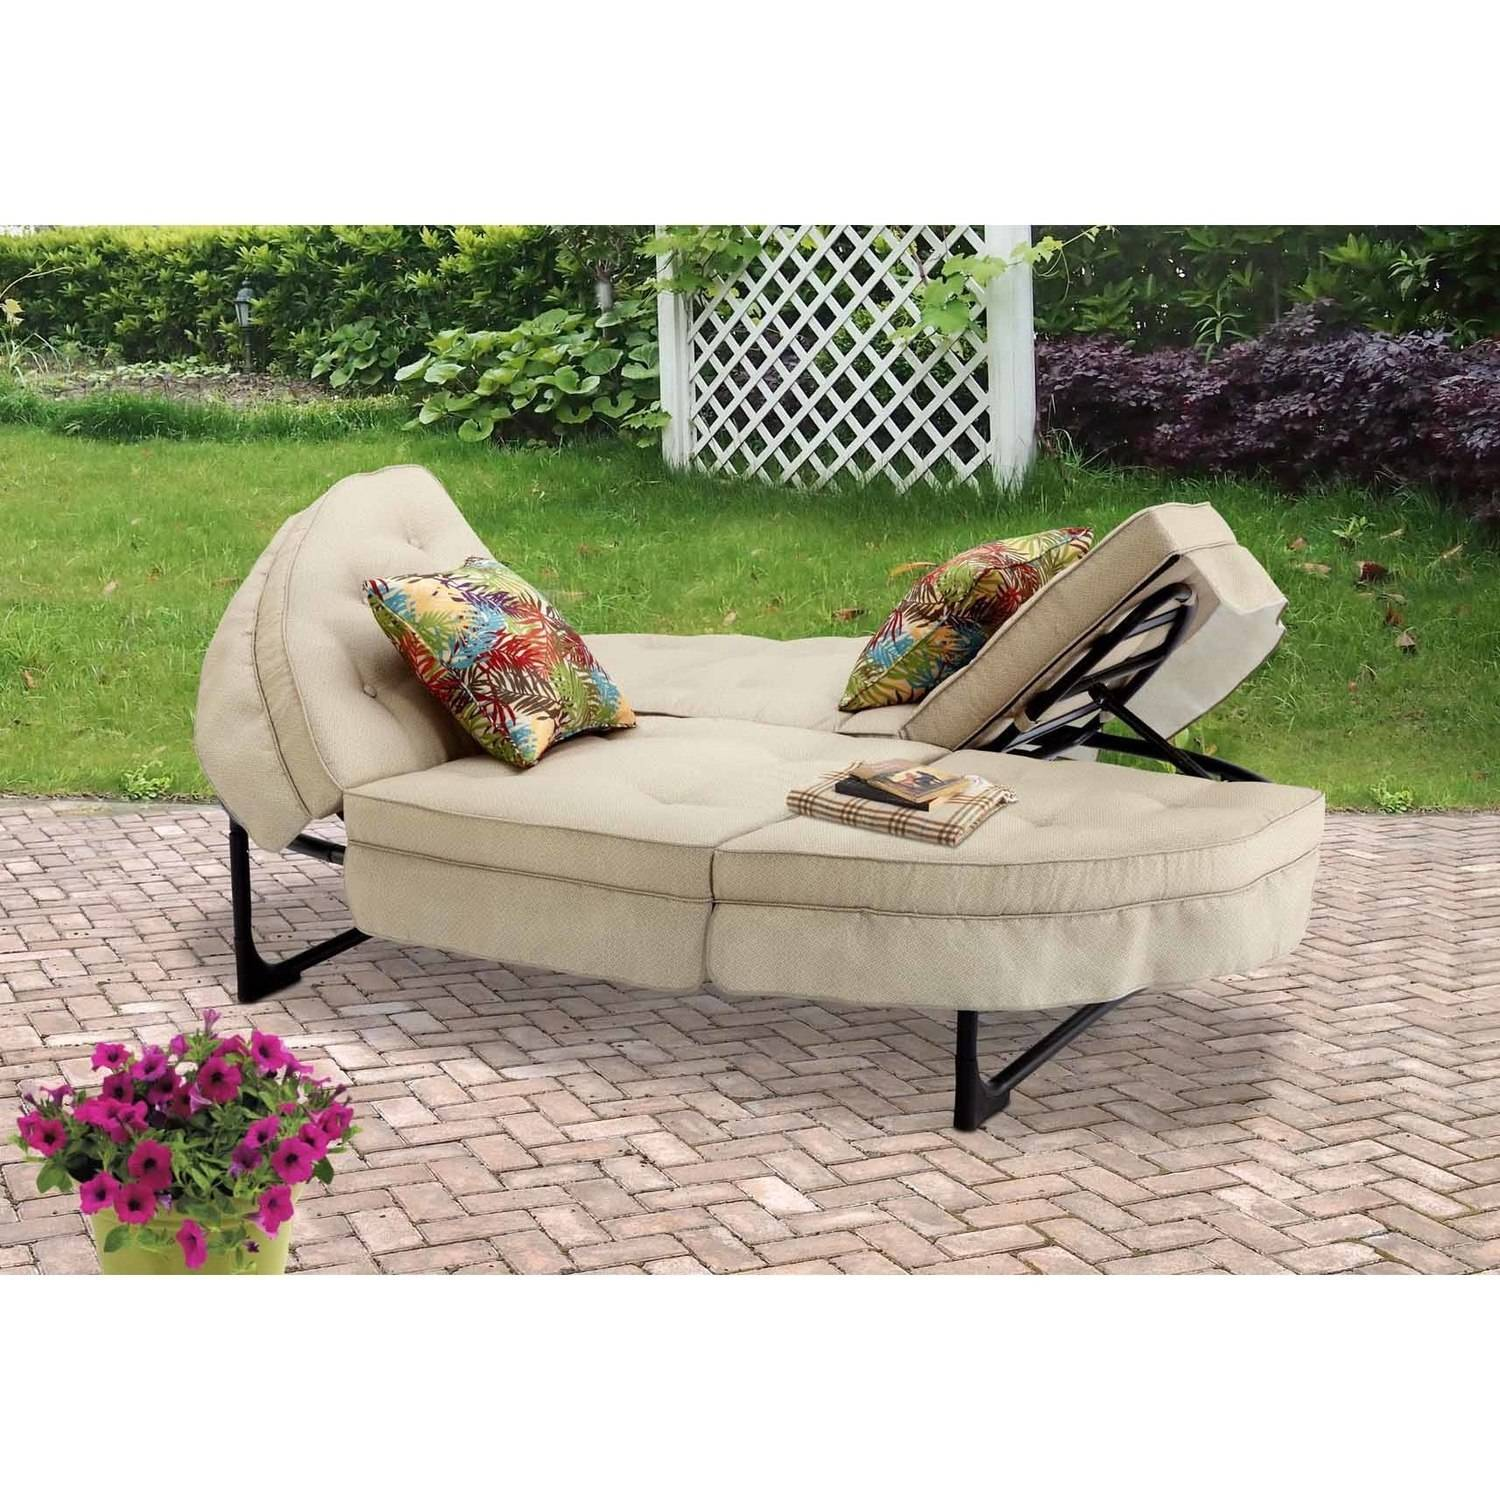 Better homes and gardens clayton court chaise lounge with for Alyssa outdoor chaise lounge